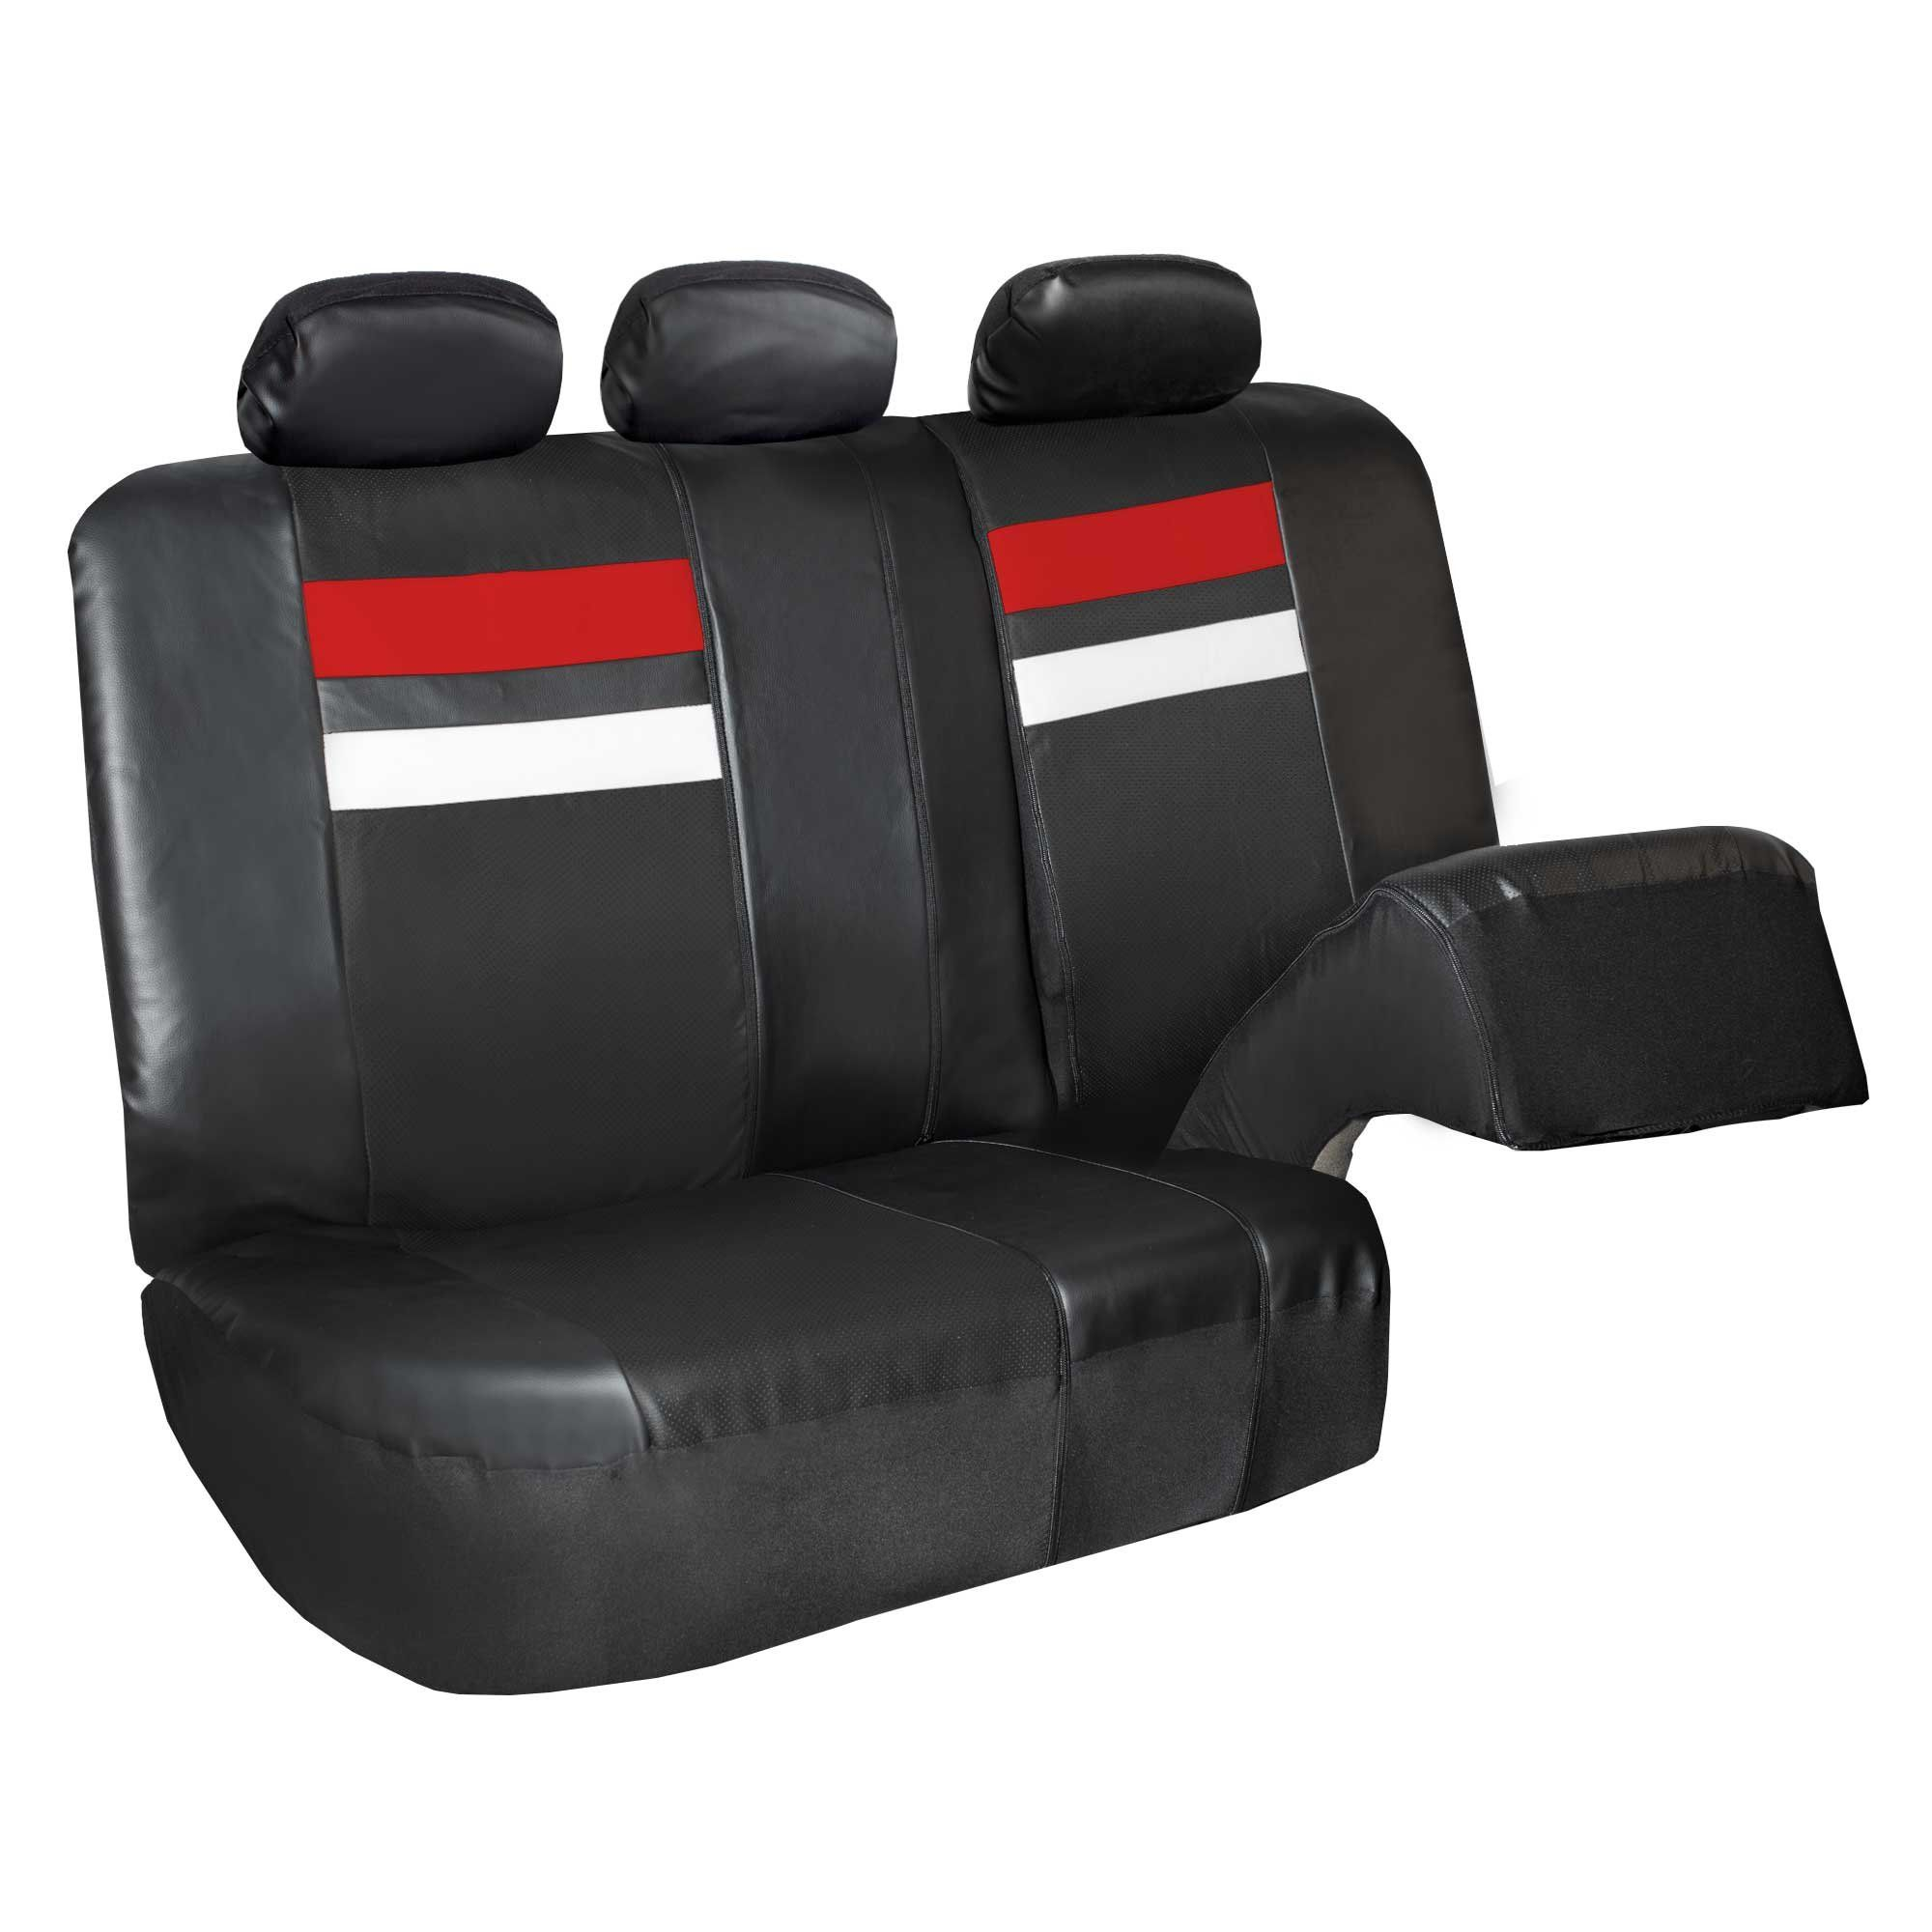 Gray FH Group PU008115 Highest Grade Faux Leather Seat Covers Universal Fit Full Set with Gift